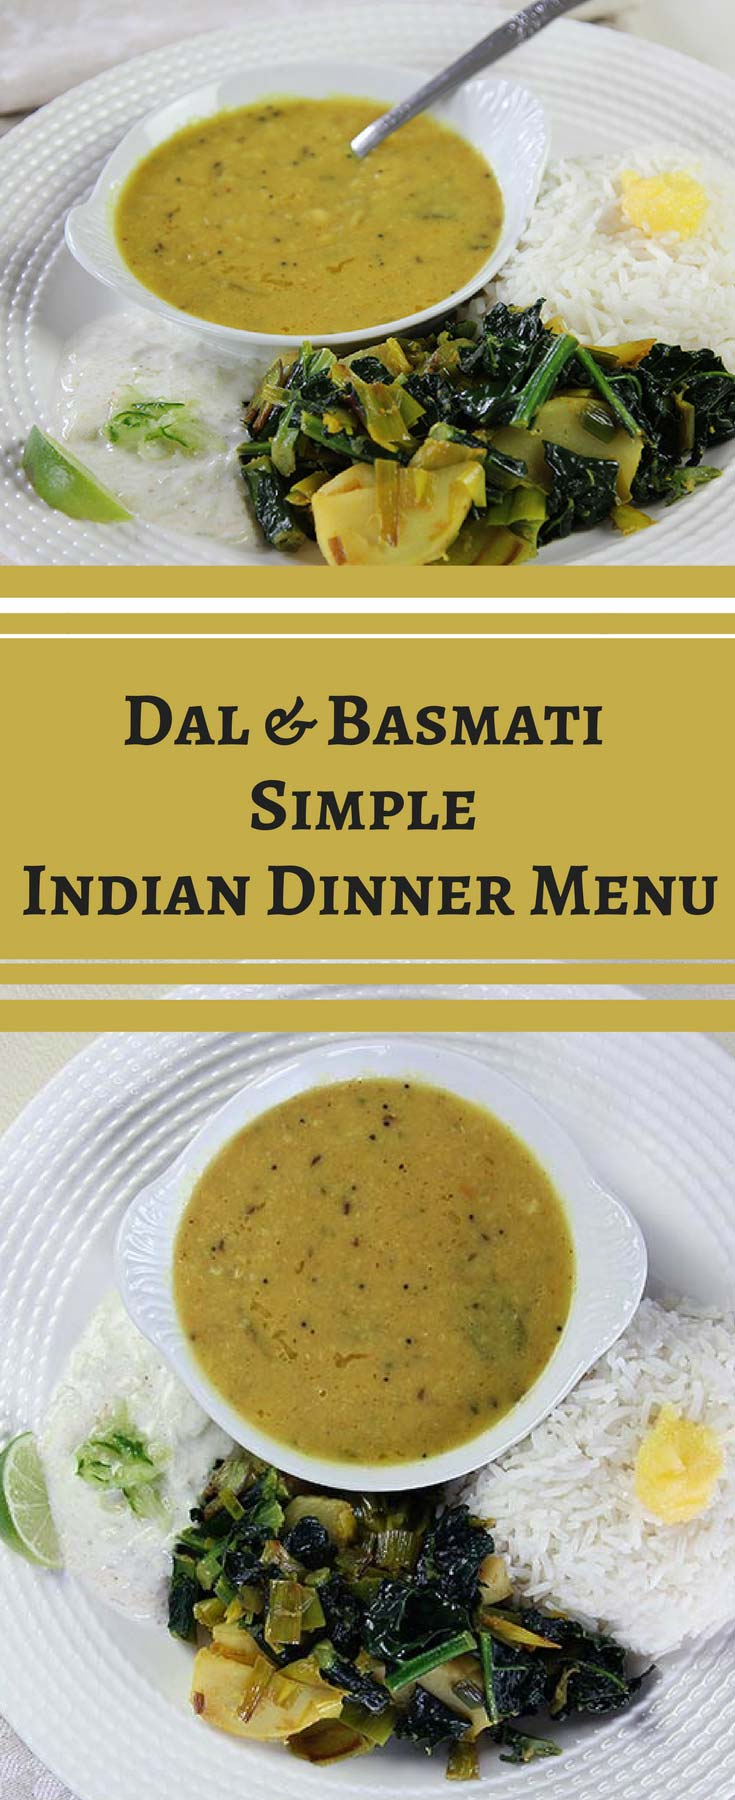 This vegetarian Indian dinner recipe—featuring dal and basmati rice, with a vegetable side (sabzi), and condiment—seeks to demystify the Indian dinner menu, and provide simple vegetarian Indian recipes that you can use to enjoy a tantalizing and tasty home-cooked Indian dinner any day of the week.